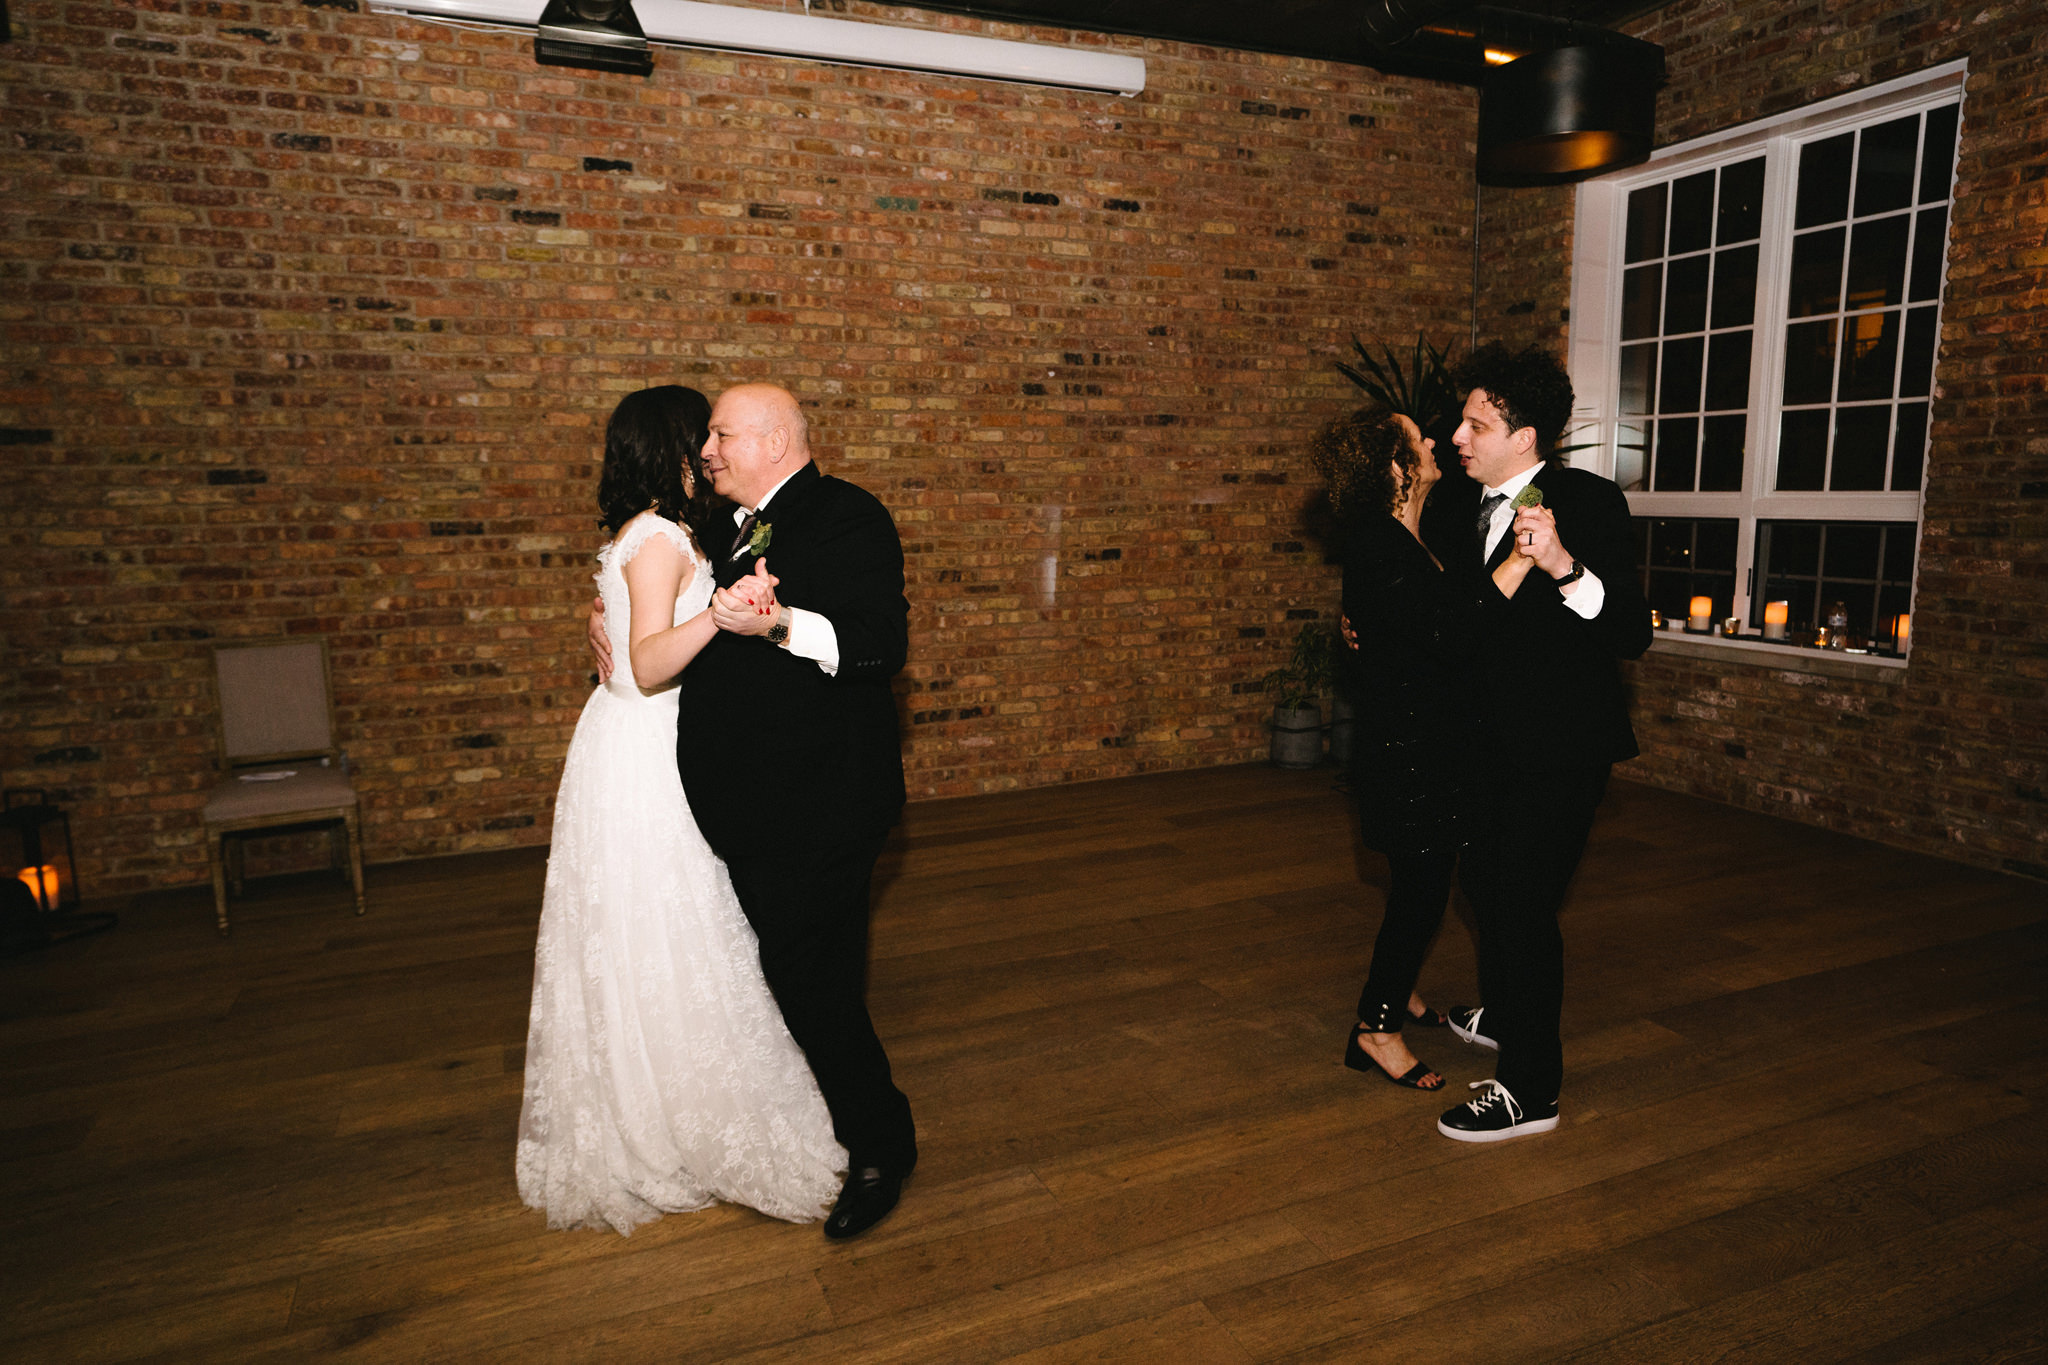 121-rempel-photography-chicago-wedding-inspiration-west-loop-fulton-market-caitlin-max-loft-lucia-venue-lindsey-marino-city-bbq-dana-hotel-and-spa.jpg